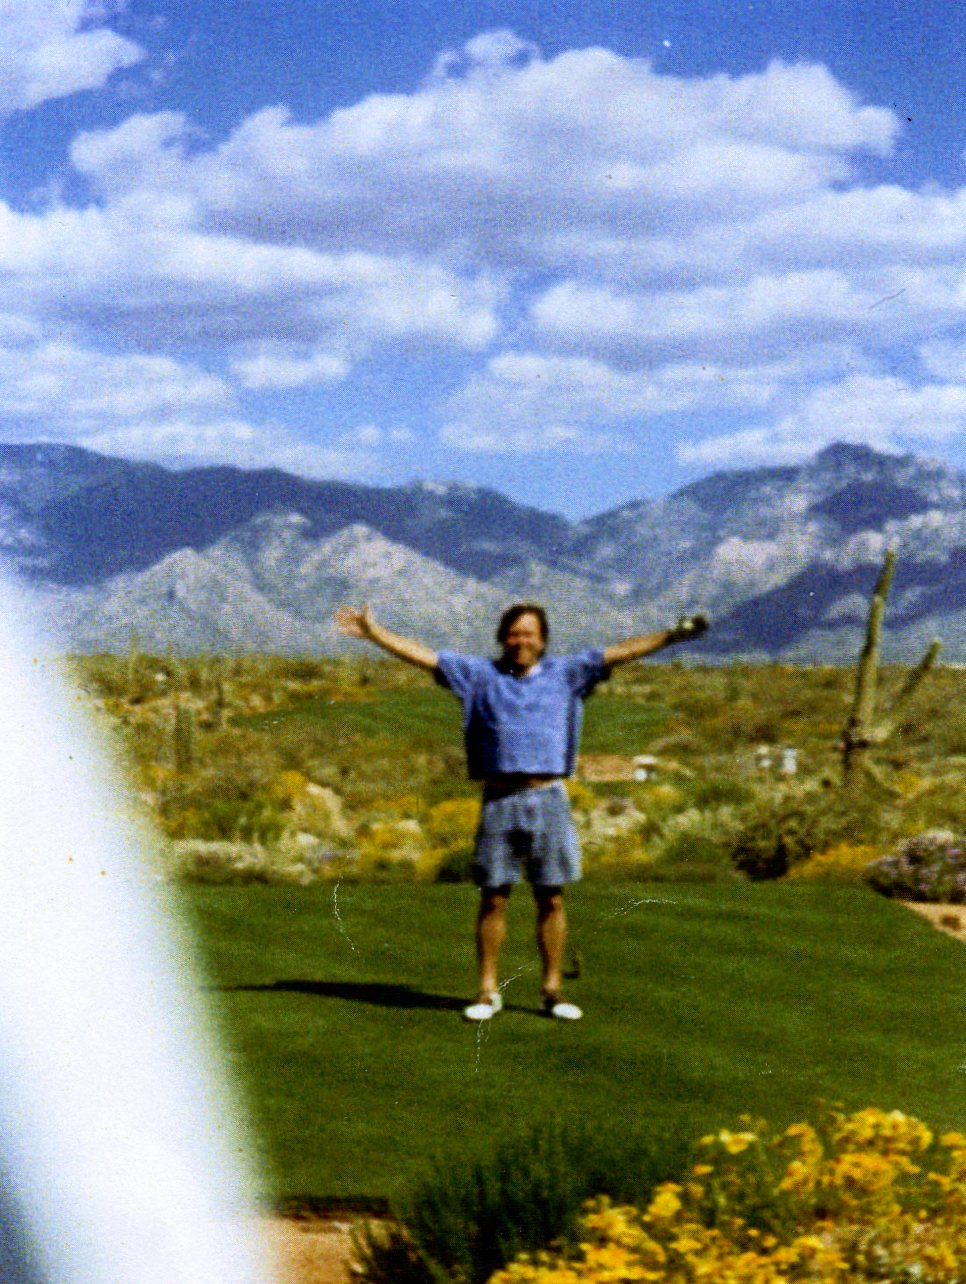 Kevin Kolenda Image Raven Golf Arizona